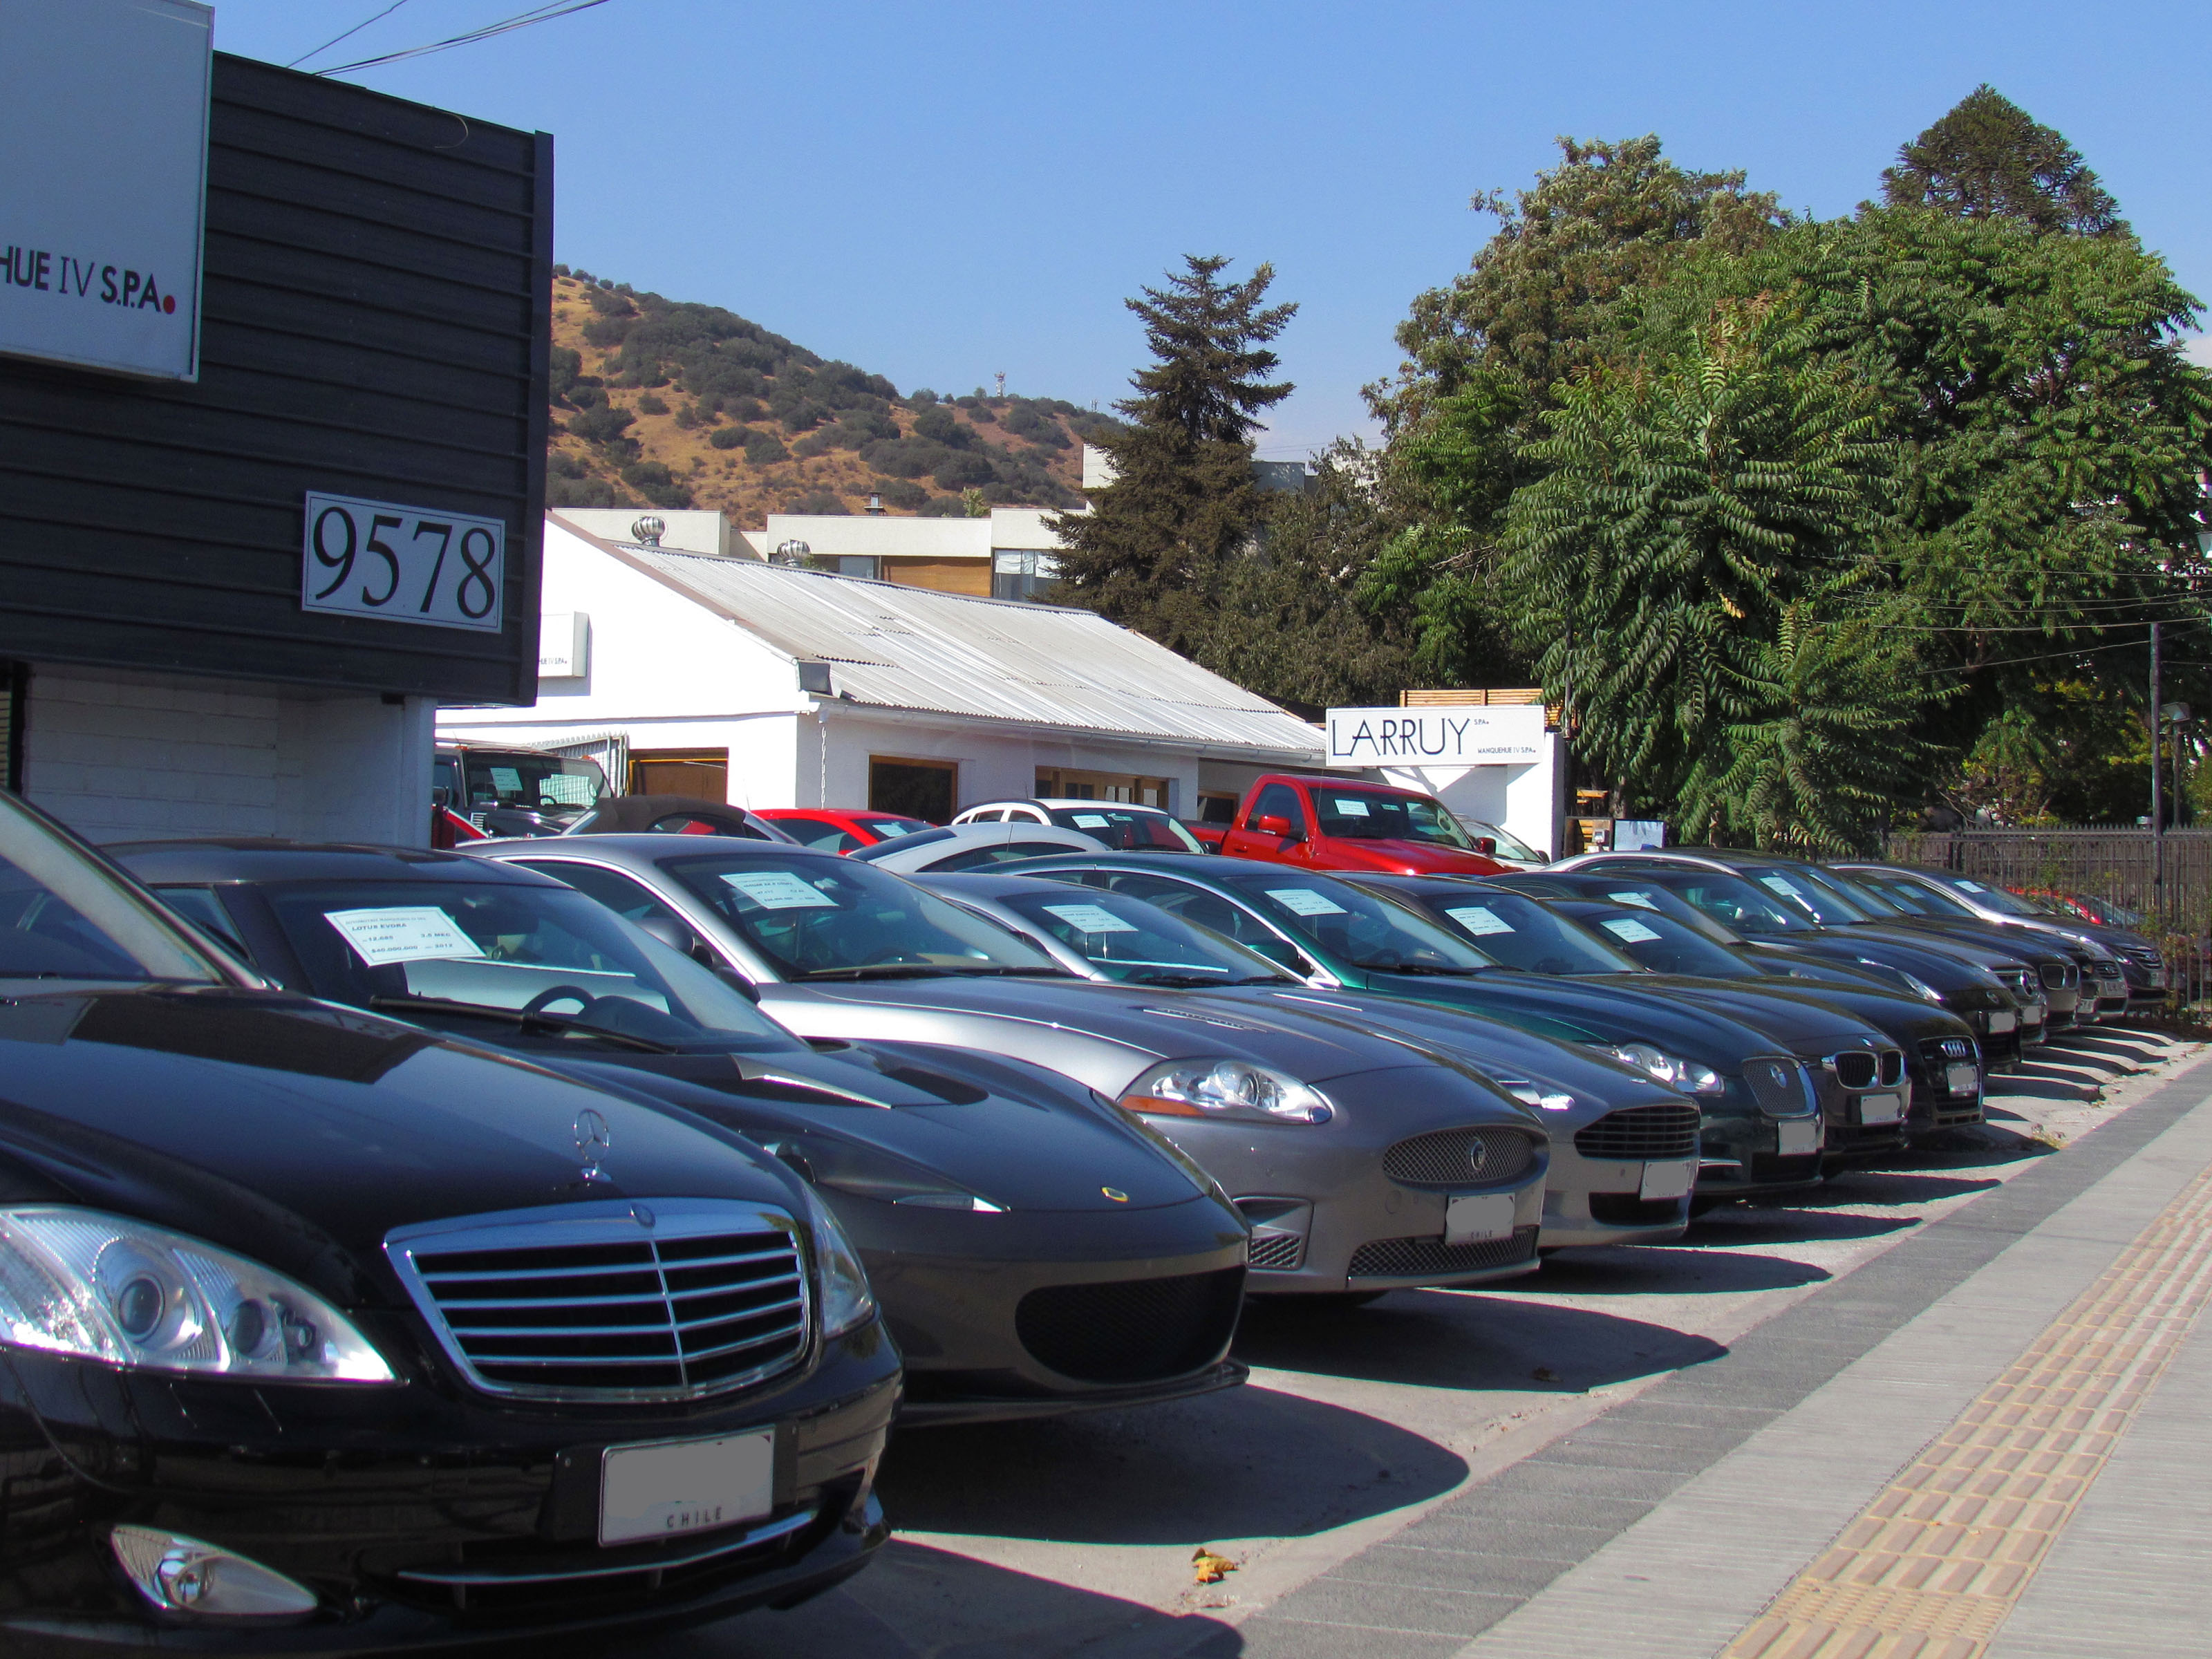 Getting A Used Car Elegant Dealer Verses Private Party when Ting A Used Car Carpay M